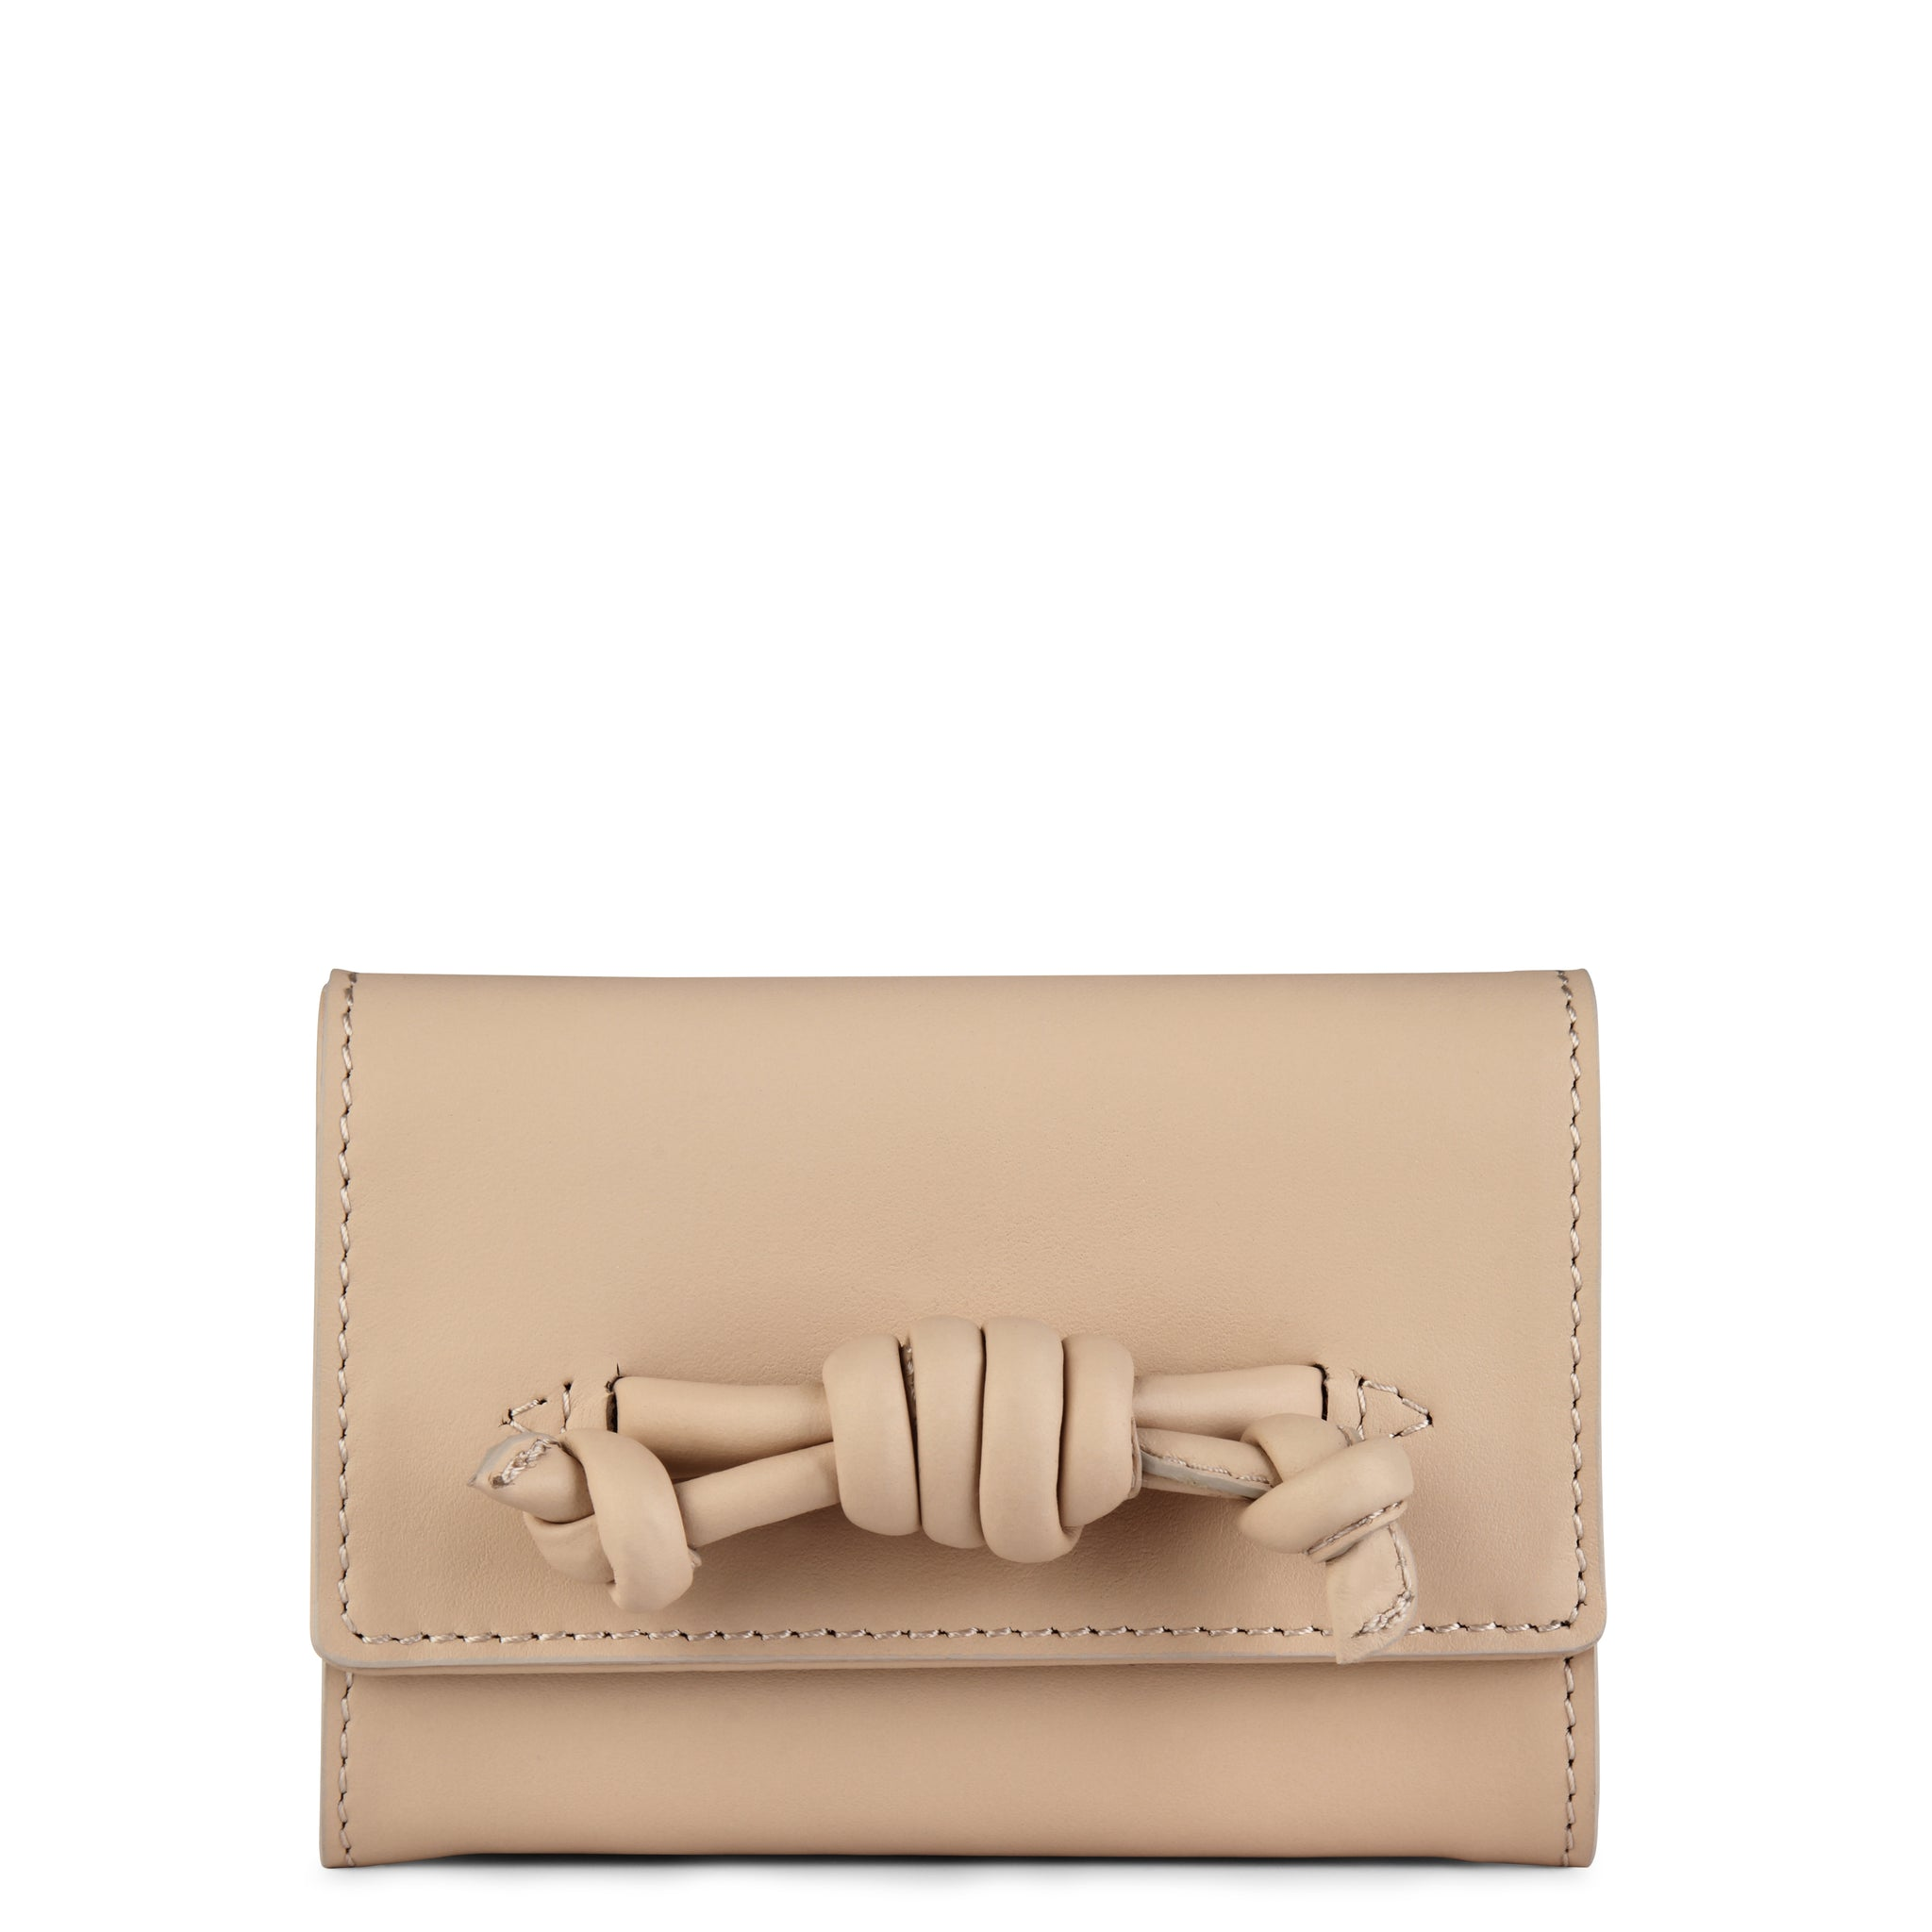 A leather nude coin purse with a knot detail, front image.